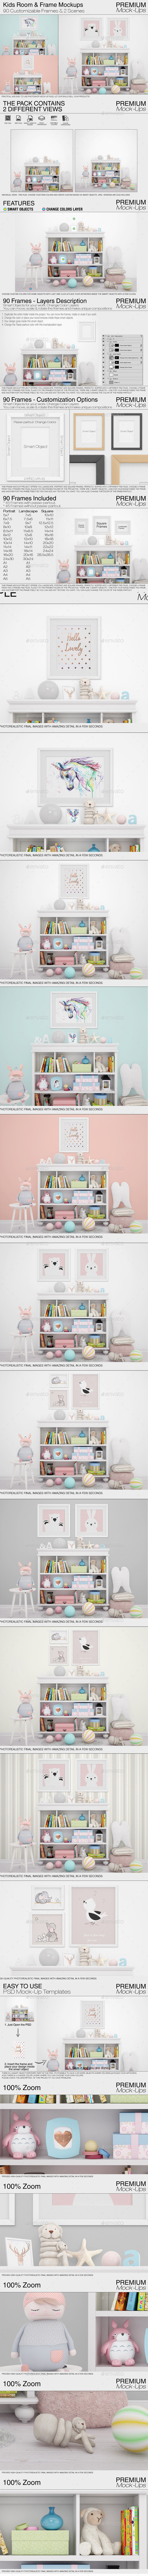 GraphicRiver Kids Room & Frames Pack 21067546